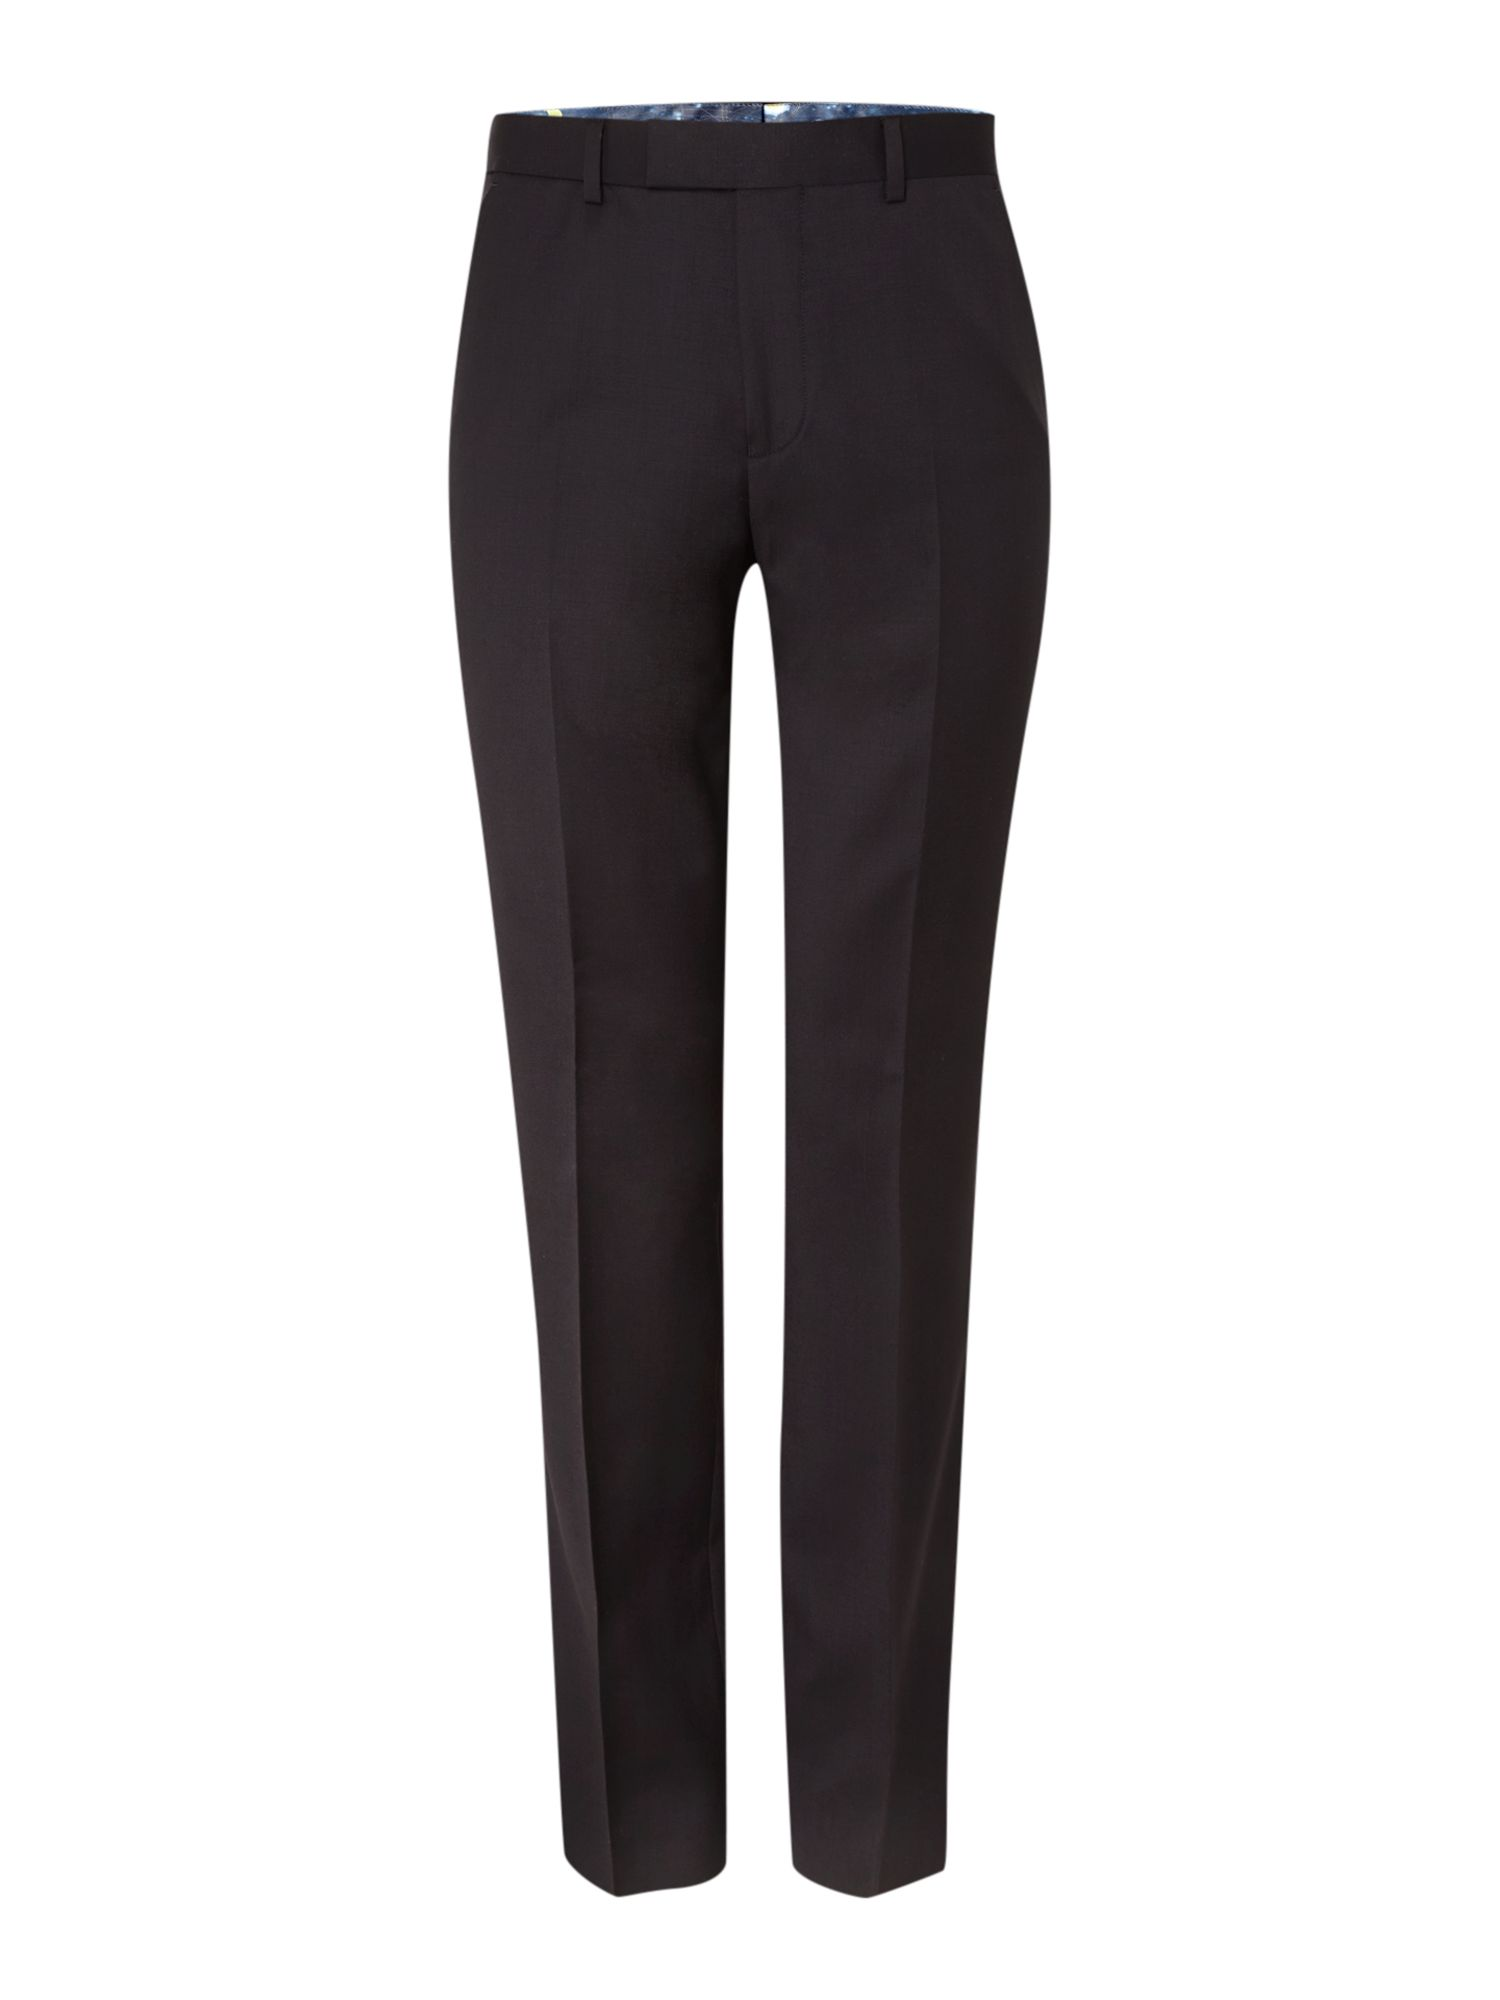 Mens Ted Baker Timeless Slim Fit Solid Suit Trousers Black